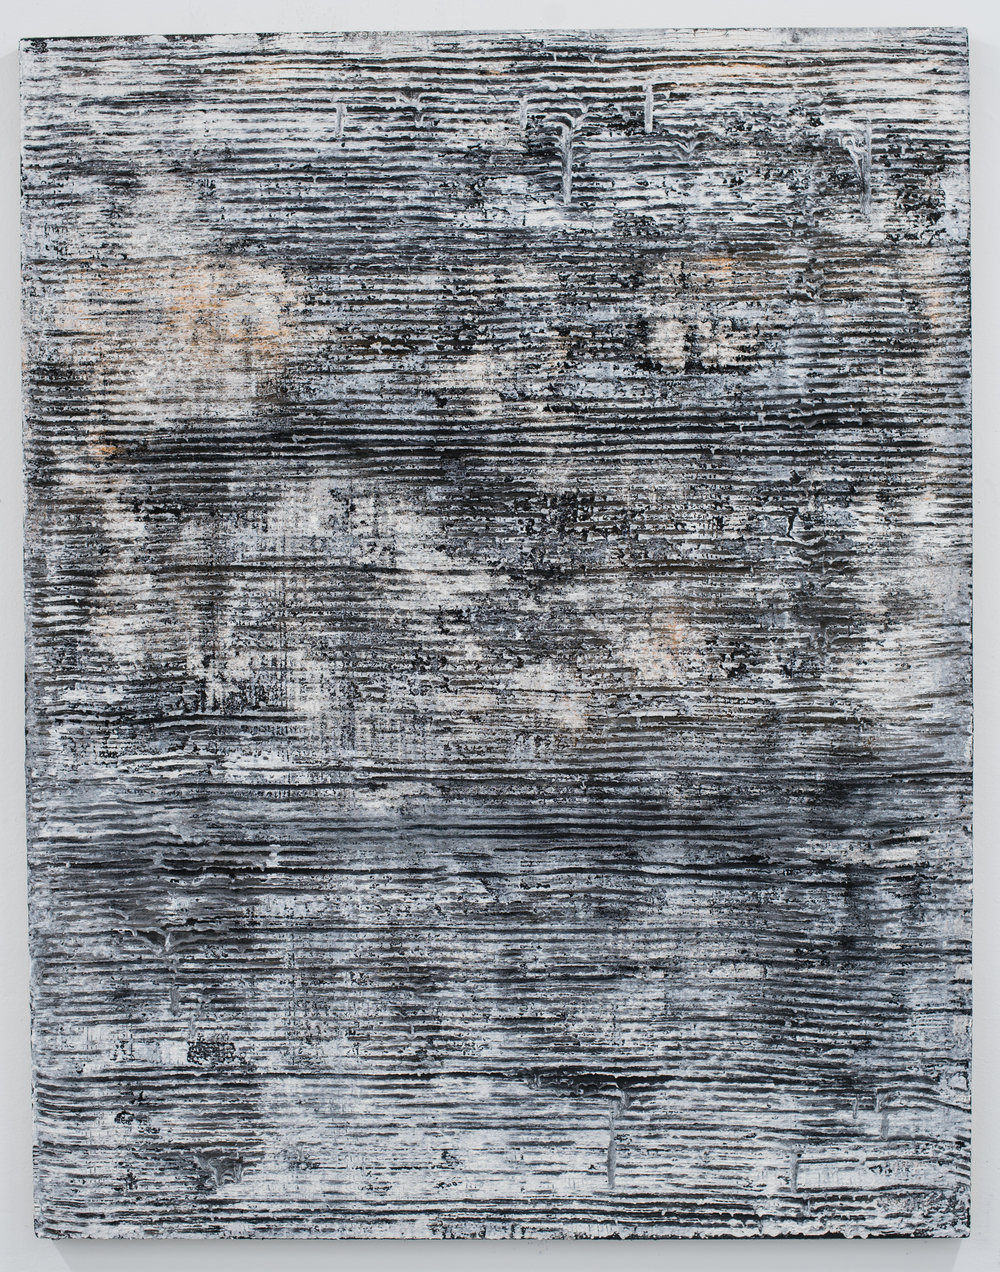 Untitled,  2018  Mixed media on linen  146 x 114 cm